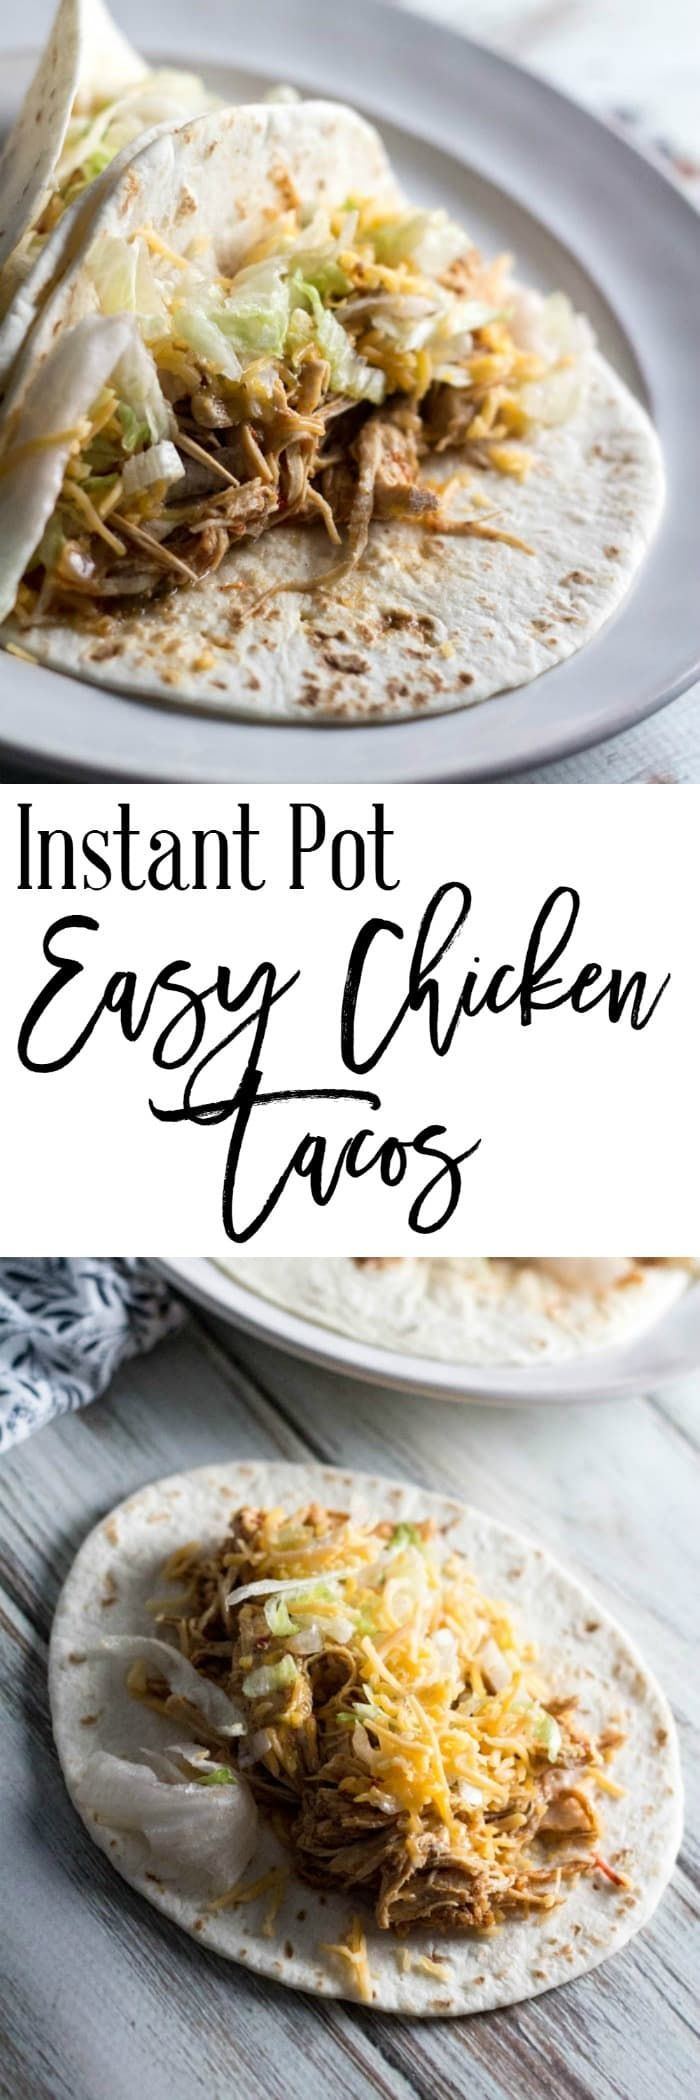 Instant Pot Easy Chicken Tacos - If you love tacos as much as I do, you need to try these Instant Pot easy chicken tacos recipe.  They are easy to make – only take about 20 minutes – and taste like they have been cooking all day long.  These are 11 SmartP